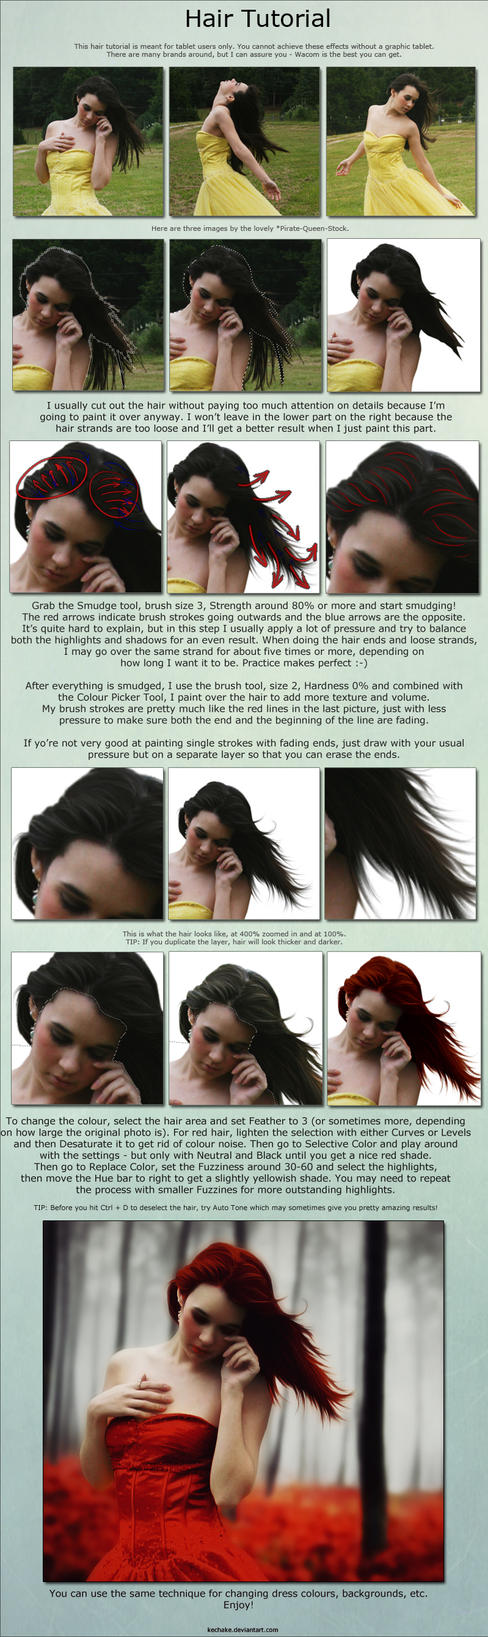 Hair Tutorial by Kechake